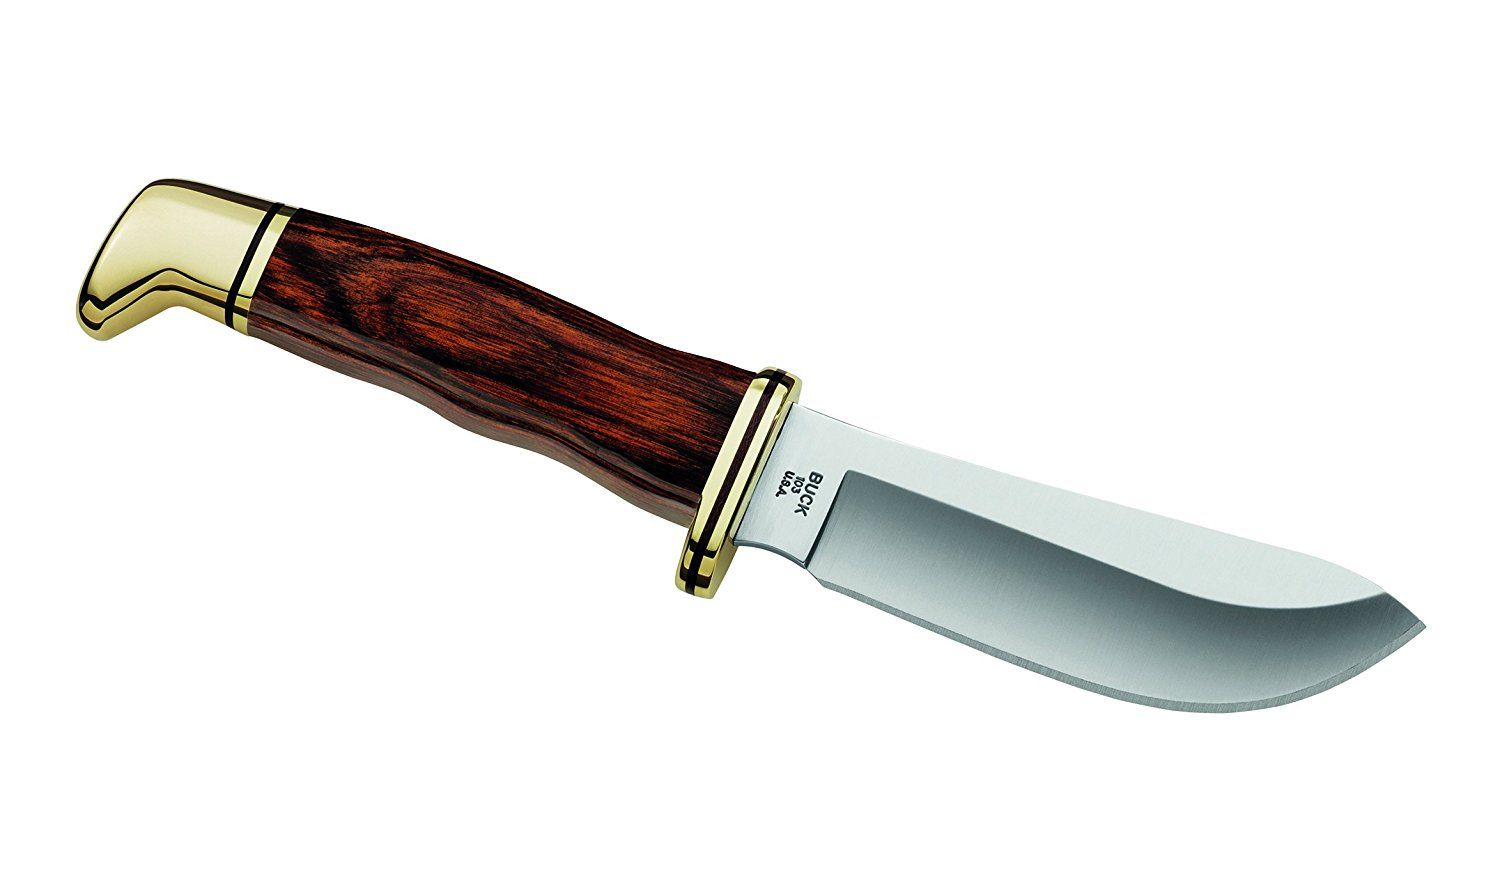 10 Best Skinning Knives Reviewed And Rated In 2019